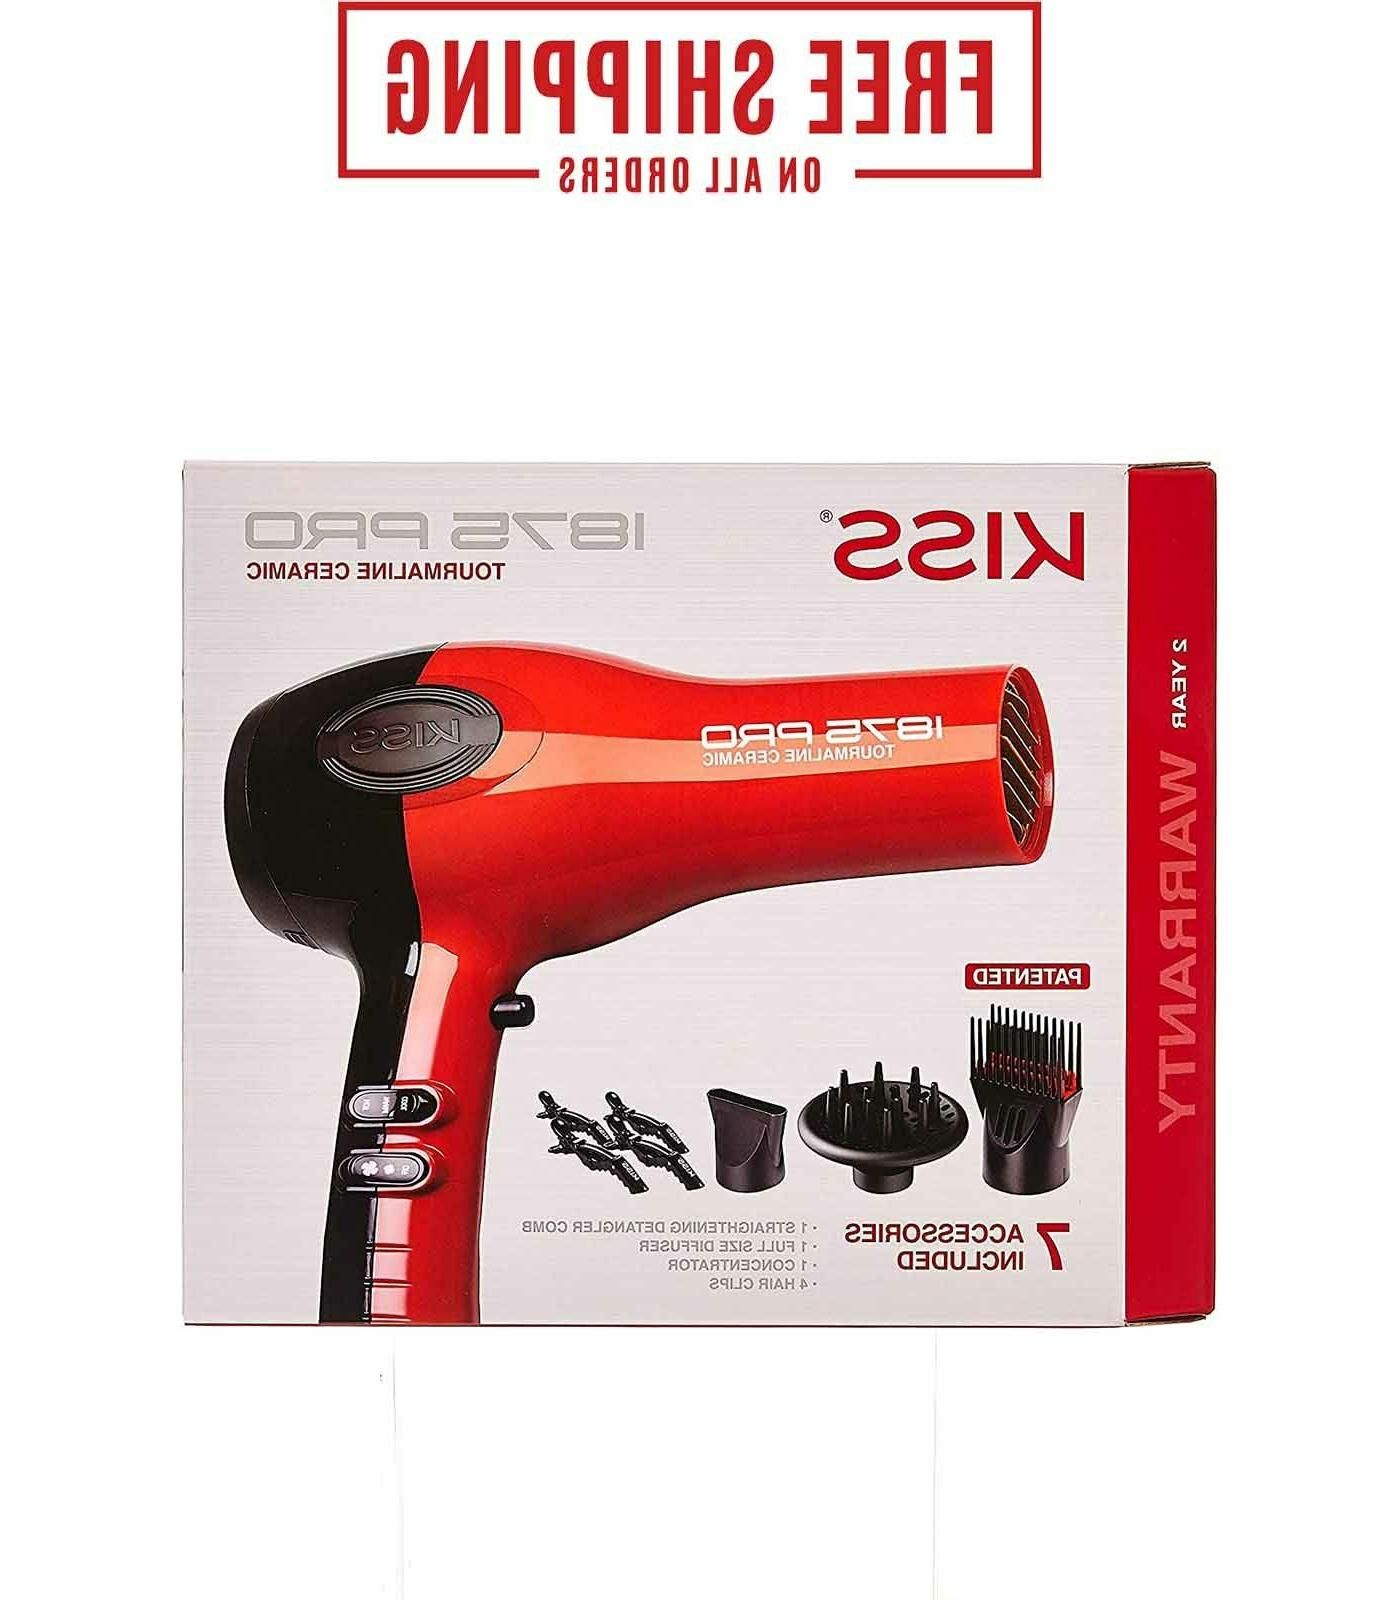 1875w hair blow dryer with comb attachment